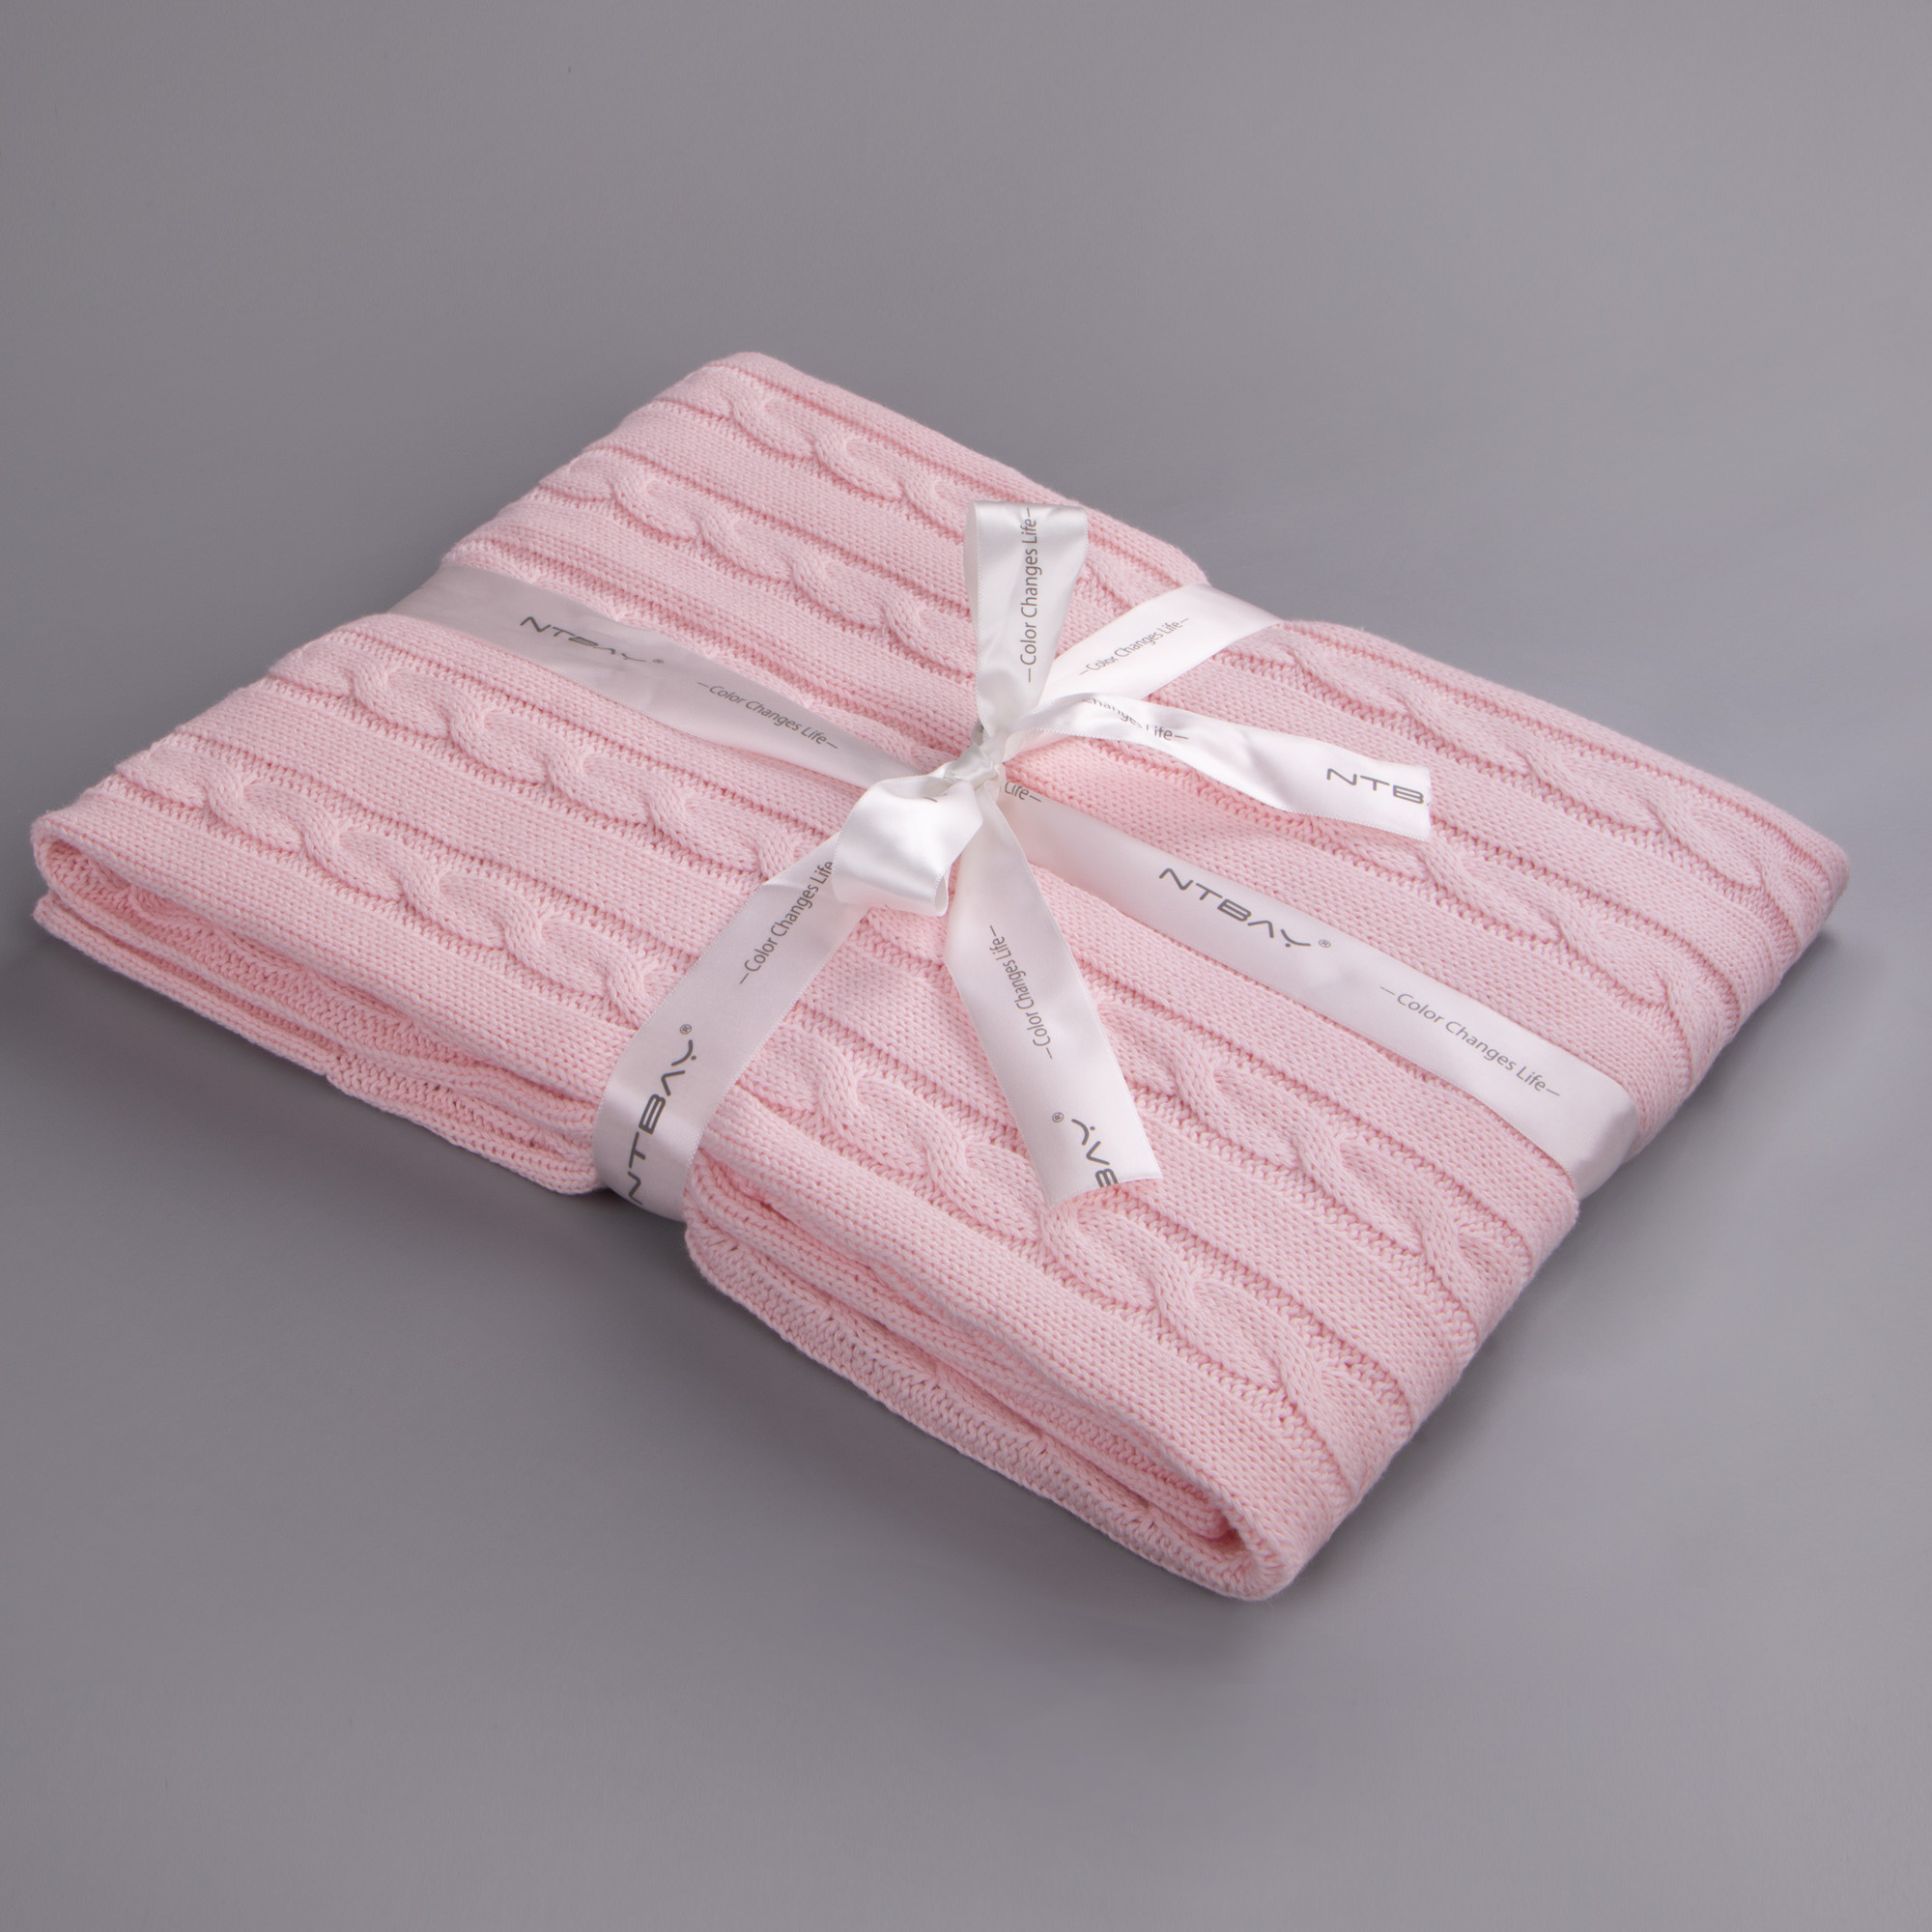 30x 40 Baby Pink NTBAY Cotton Cable Knit Toddler Blanket Super Soft Warm Multi Color Baby Blanket